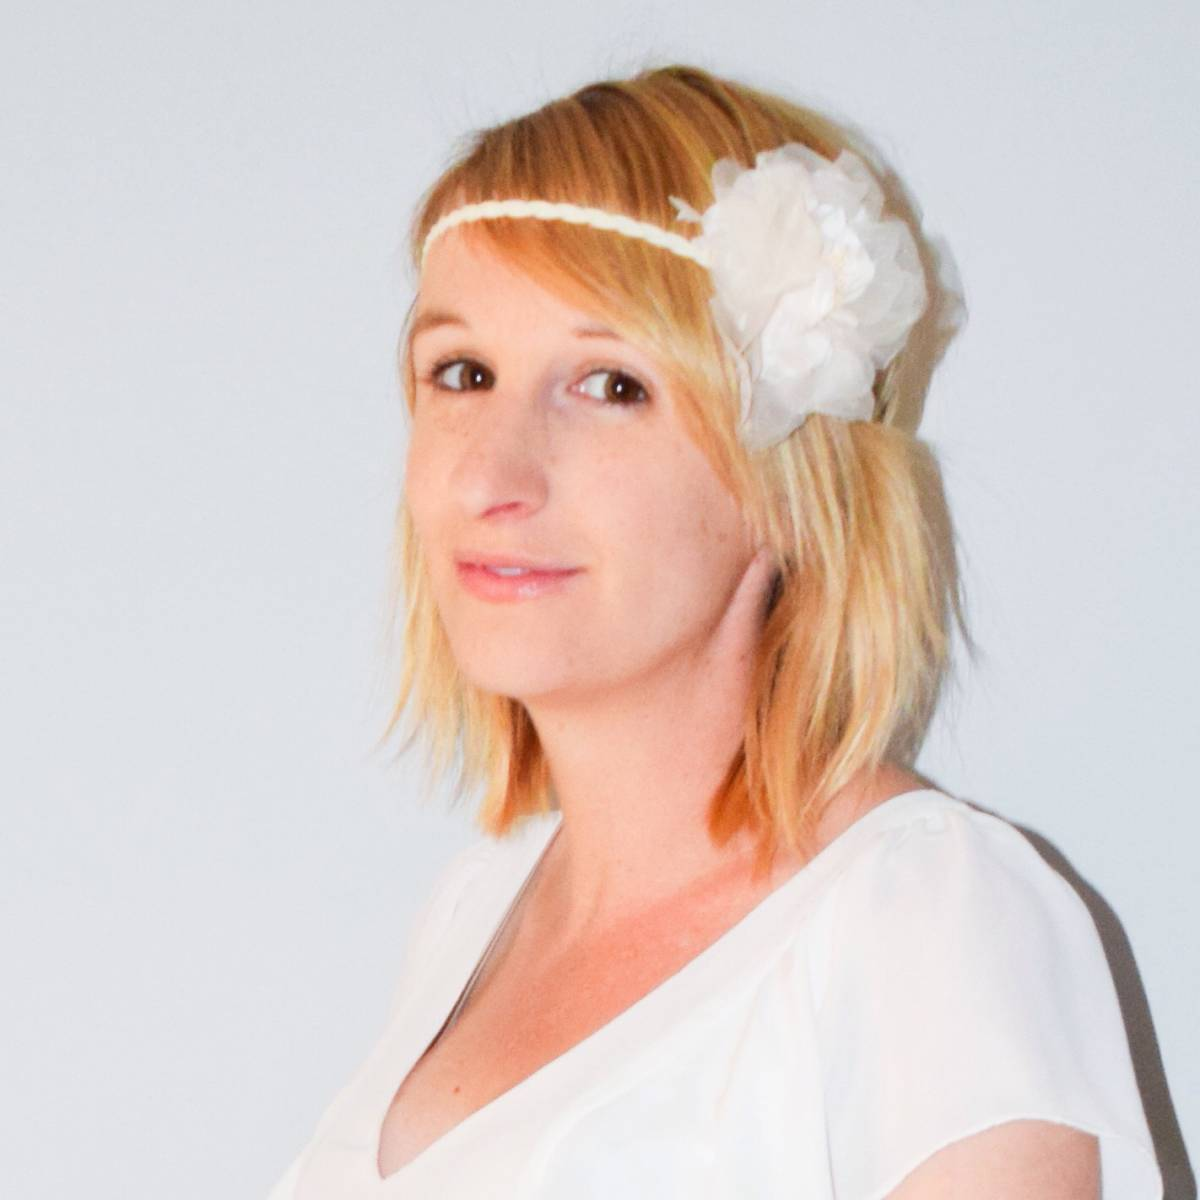 My Favourite Space with Sarah Bowen